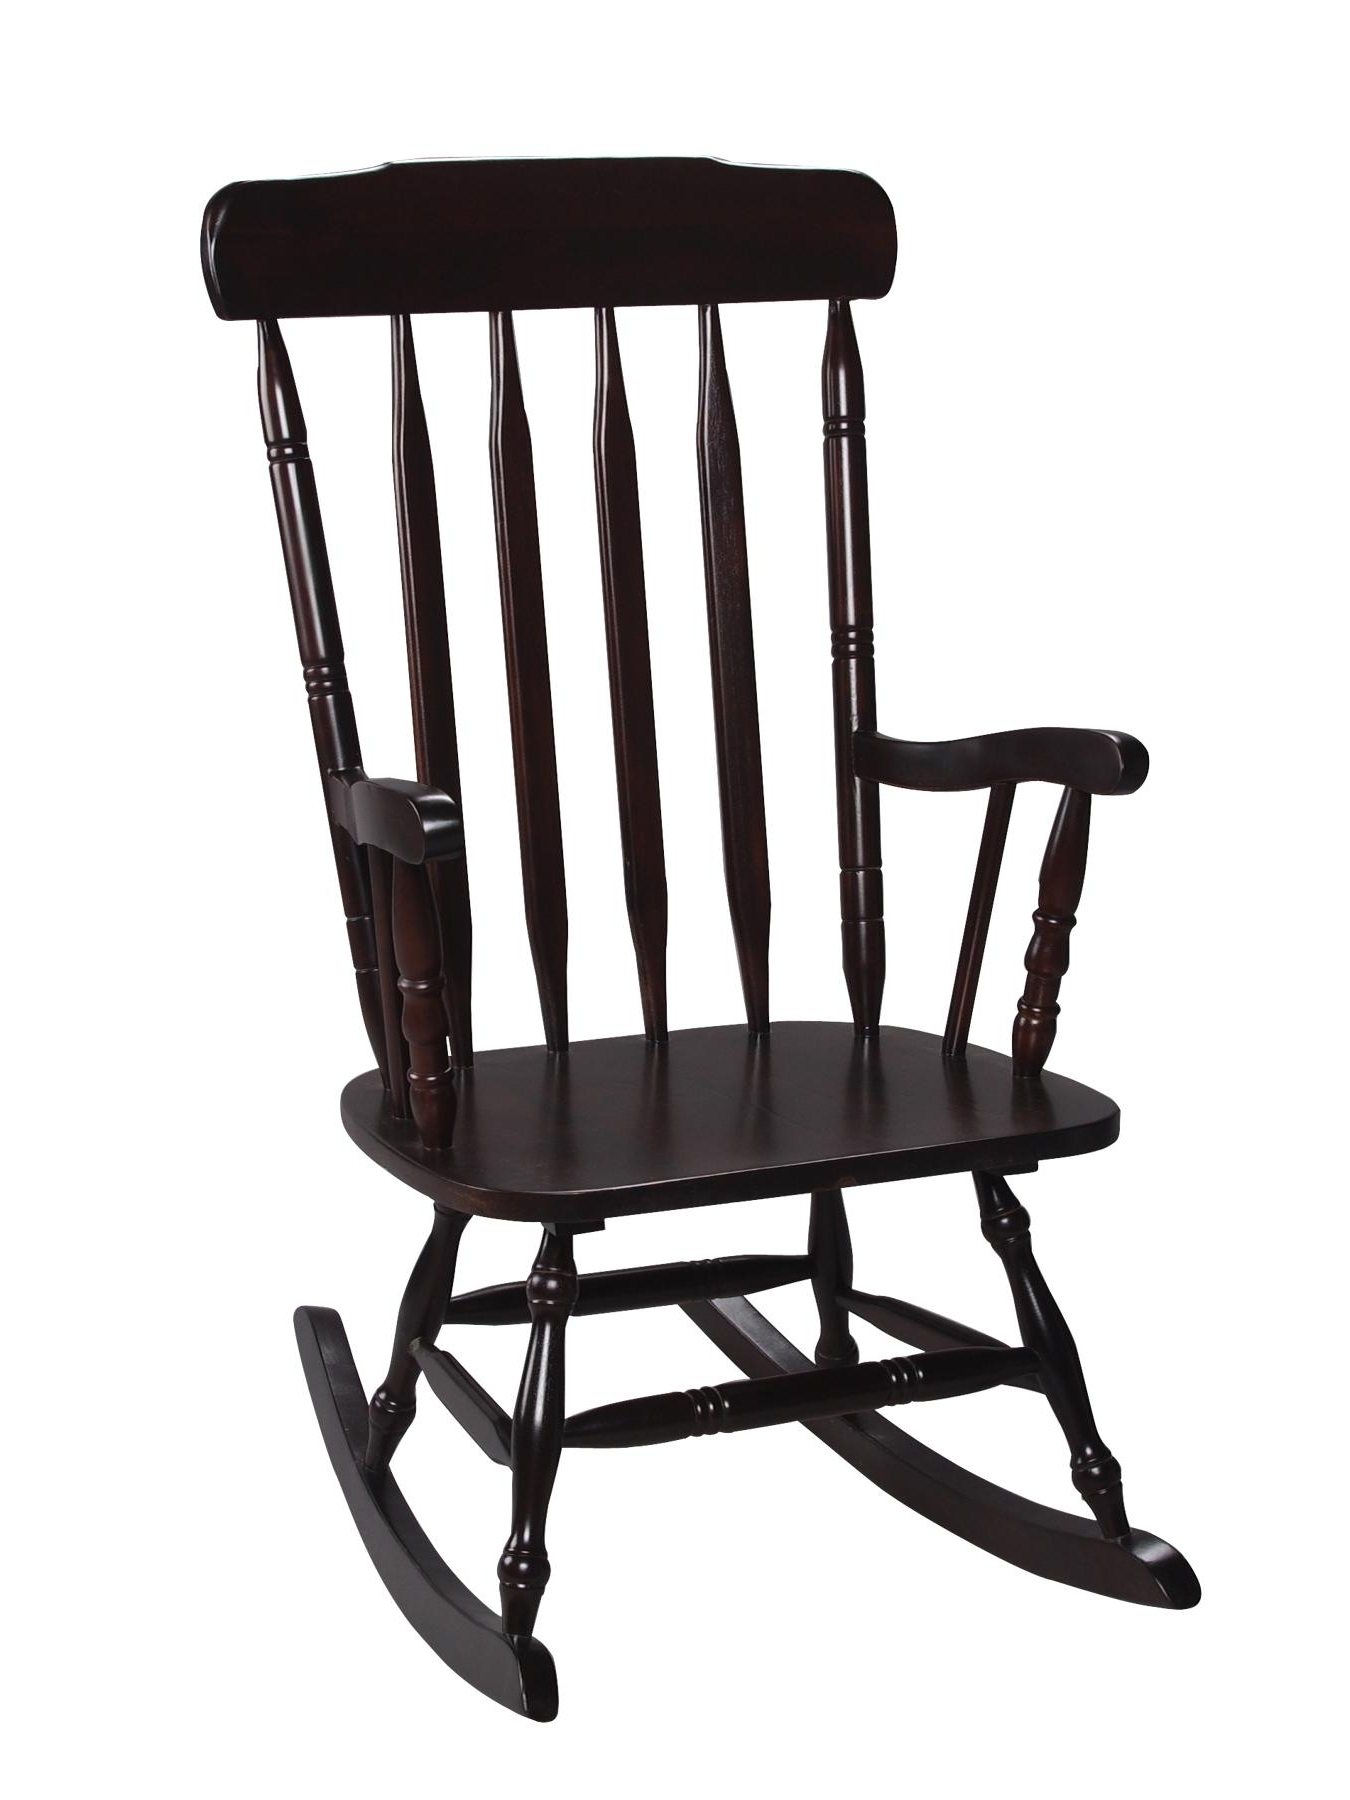 Black Rocking Chairs Intended For Most Current Surprising Black Rocking Chair On Famous Chair Designs With (View 13 of 15)